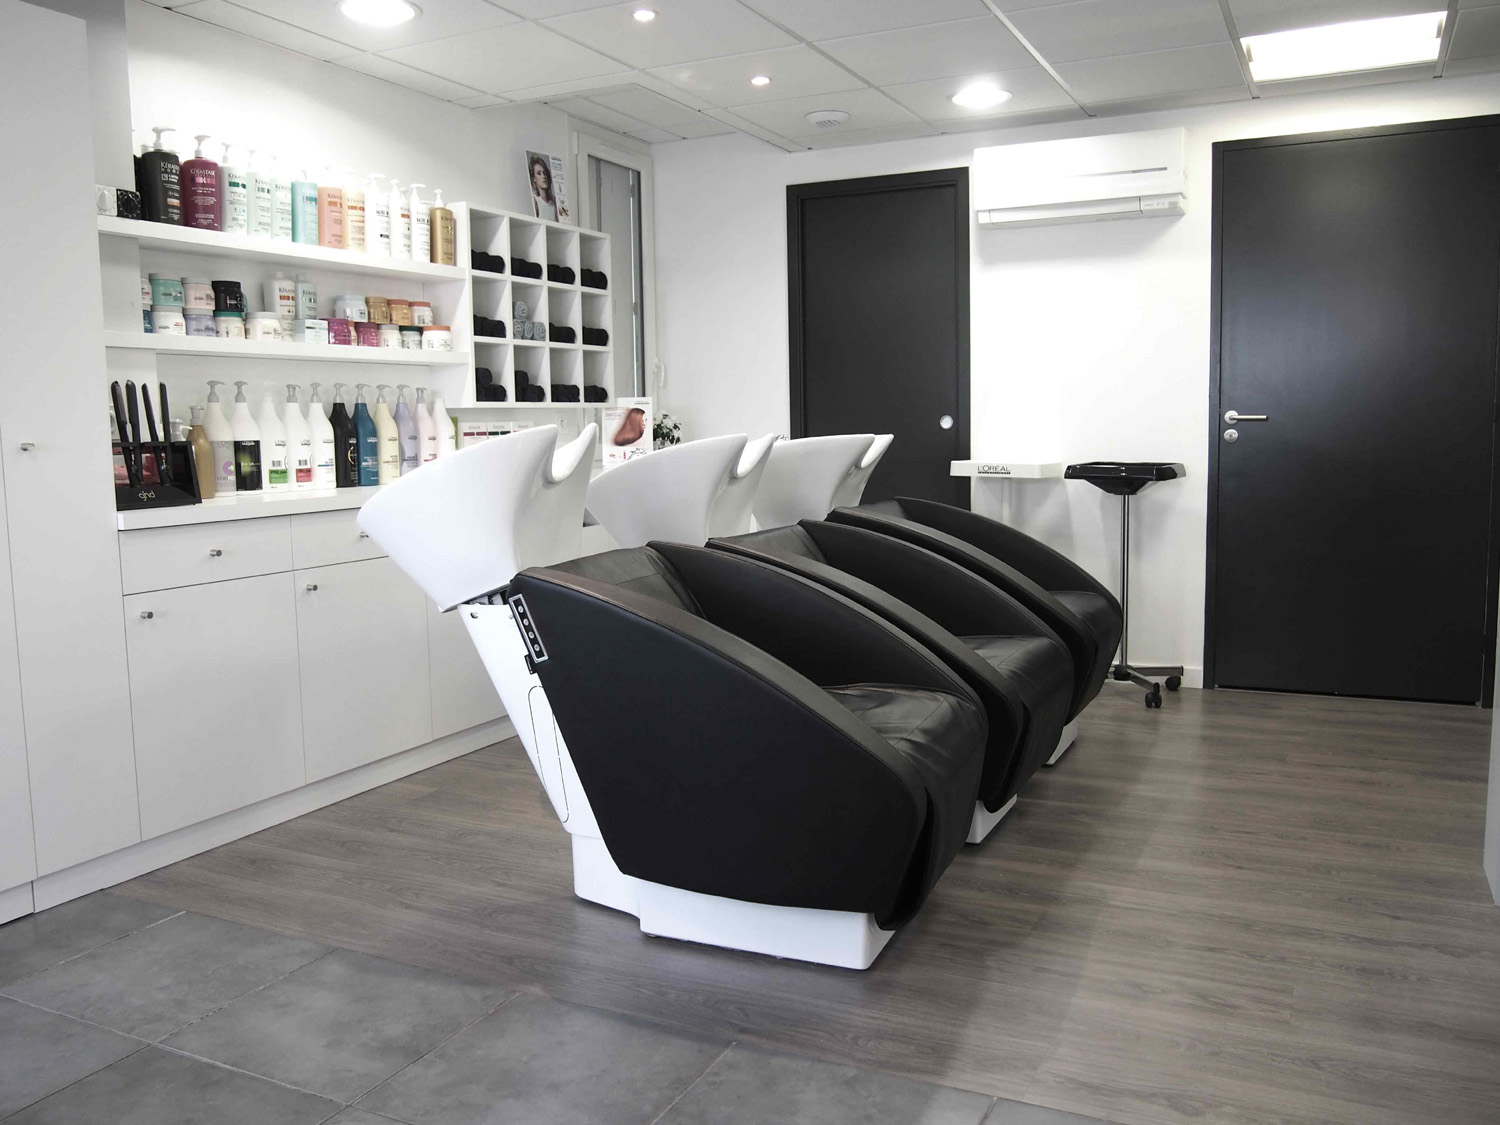 R novation et d coration int rieure salon de coiffure - Decoration d interieur salon ...